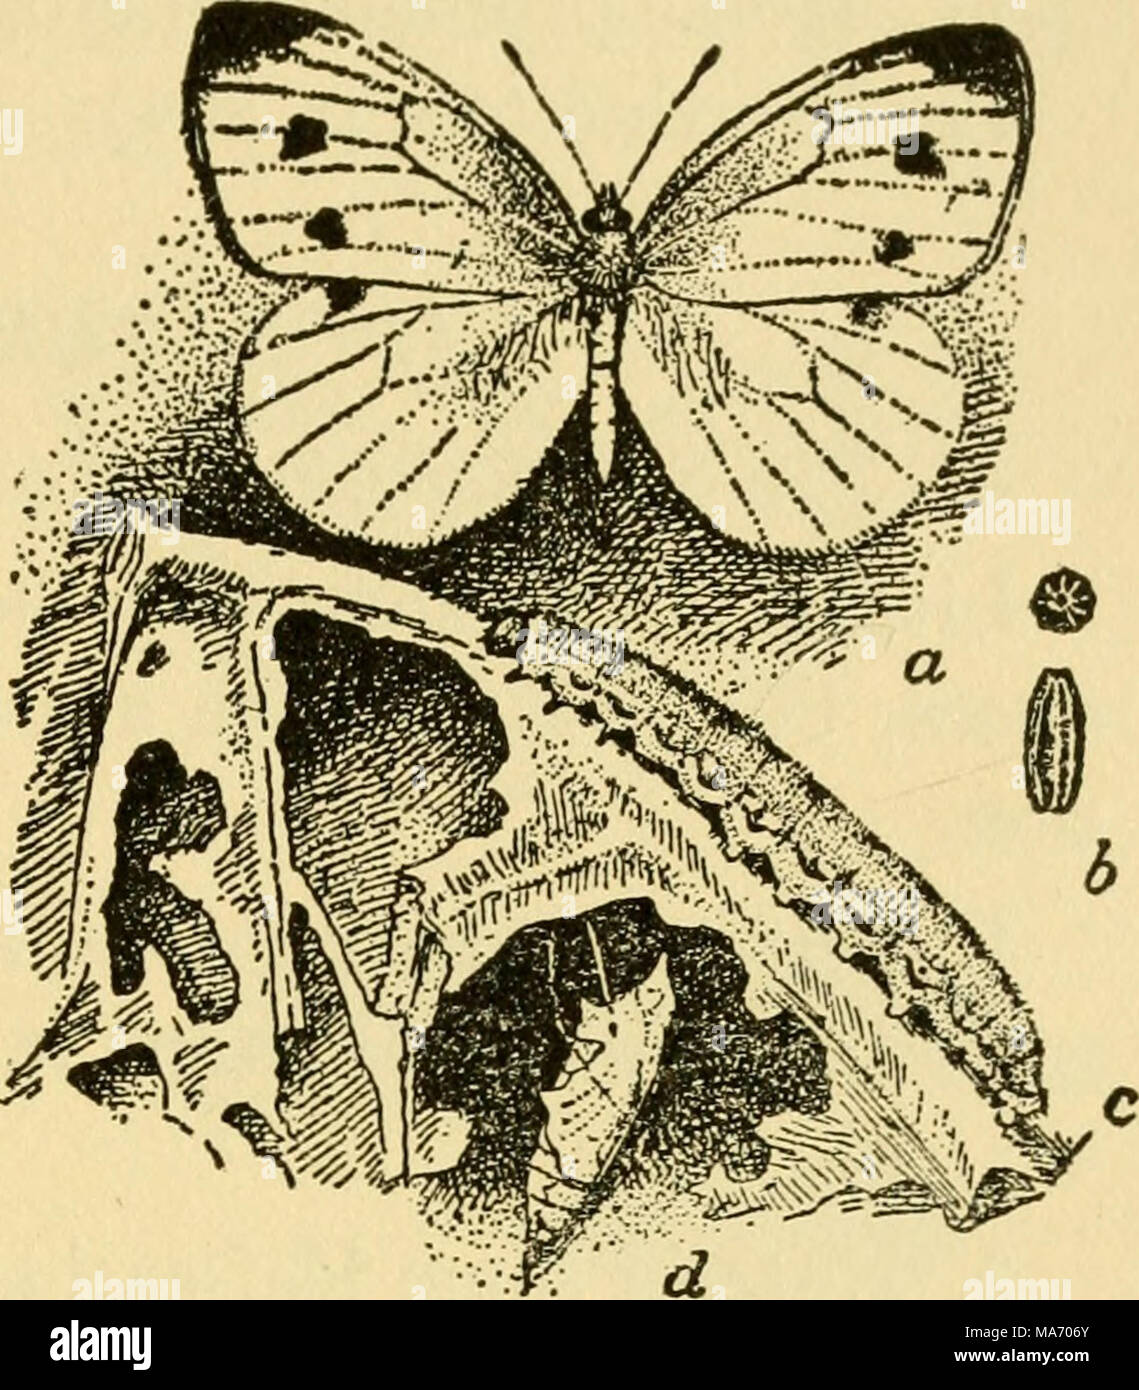 . Elementary lessons on insects . Fig. 45.—The cabbage butterfly: a, the adult; b, end and side views of two eggs, enlarged; c, larva; d, pupa. From U. S. Dept. of Agriculture. 3. Collect miscellaneous adult butterflies from the flowers by day. 4. Collect miscellaneous moths at lights by night. 5. If dried specimens are to be used keep them over night in a relaxing jar. 6. Collect moths and caterpillars of some of the abundant sorts, such as spanworms or loopers, hornworms or sphinxes, and garden cutworms. Many of the economic species listed on pages 152 and 153 will be prevalent in any locali - Stock Image